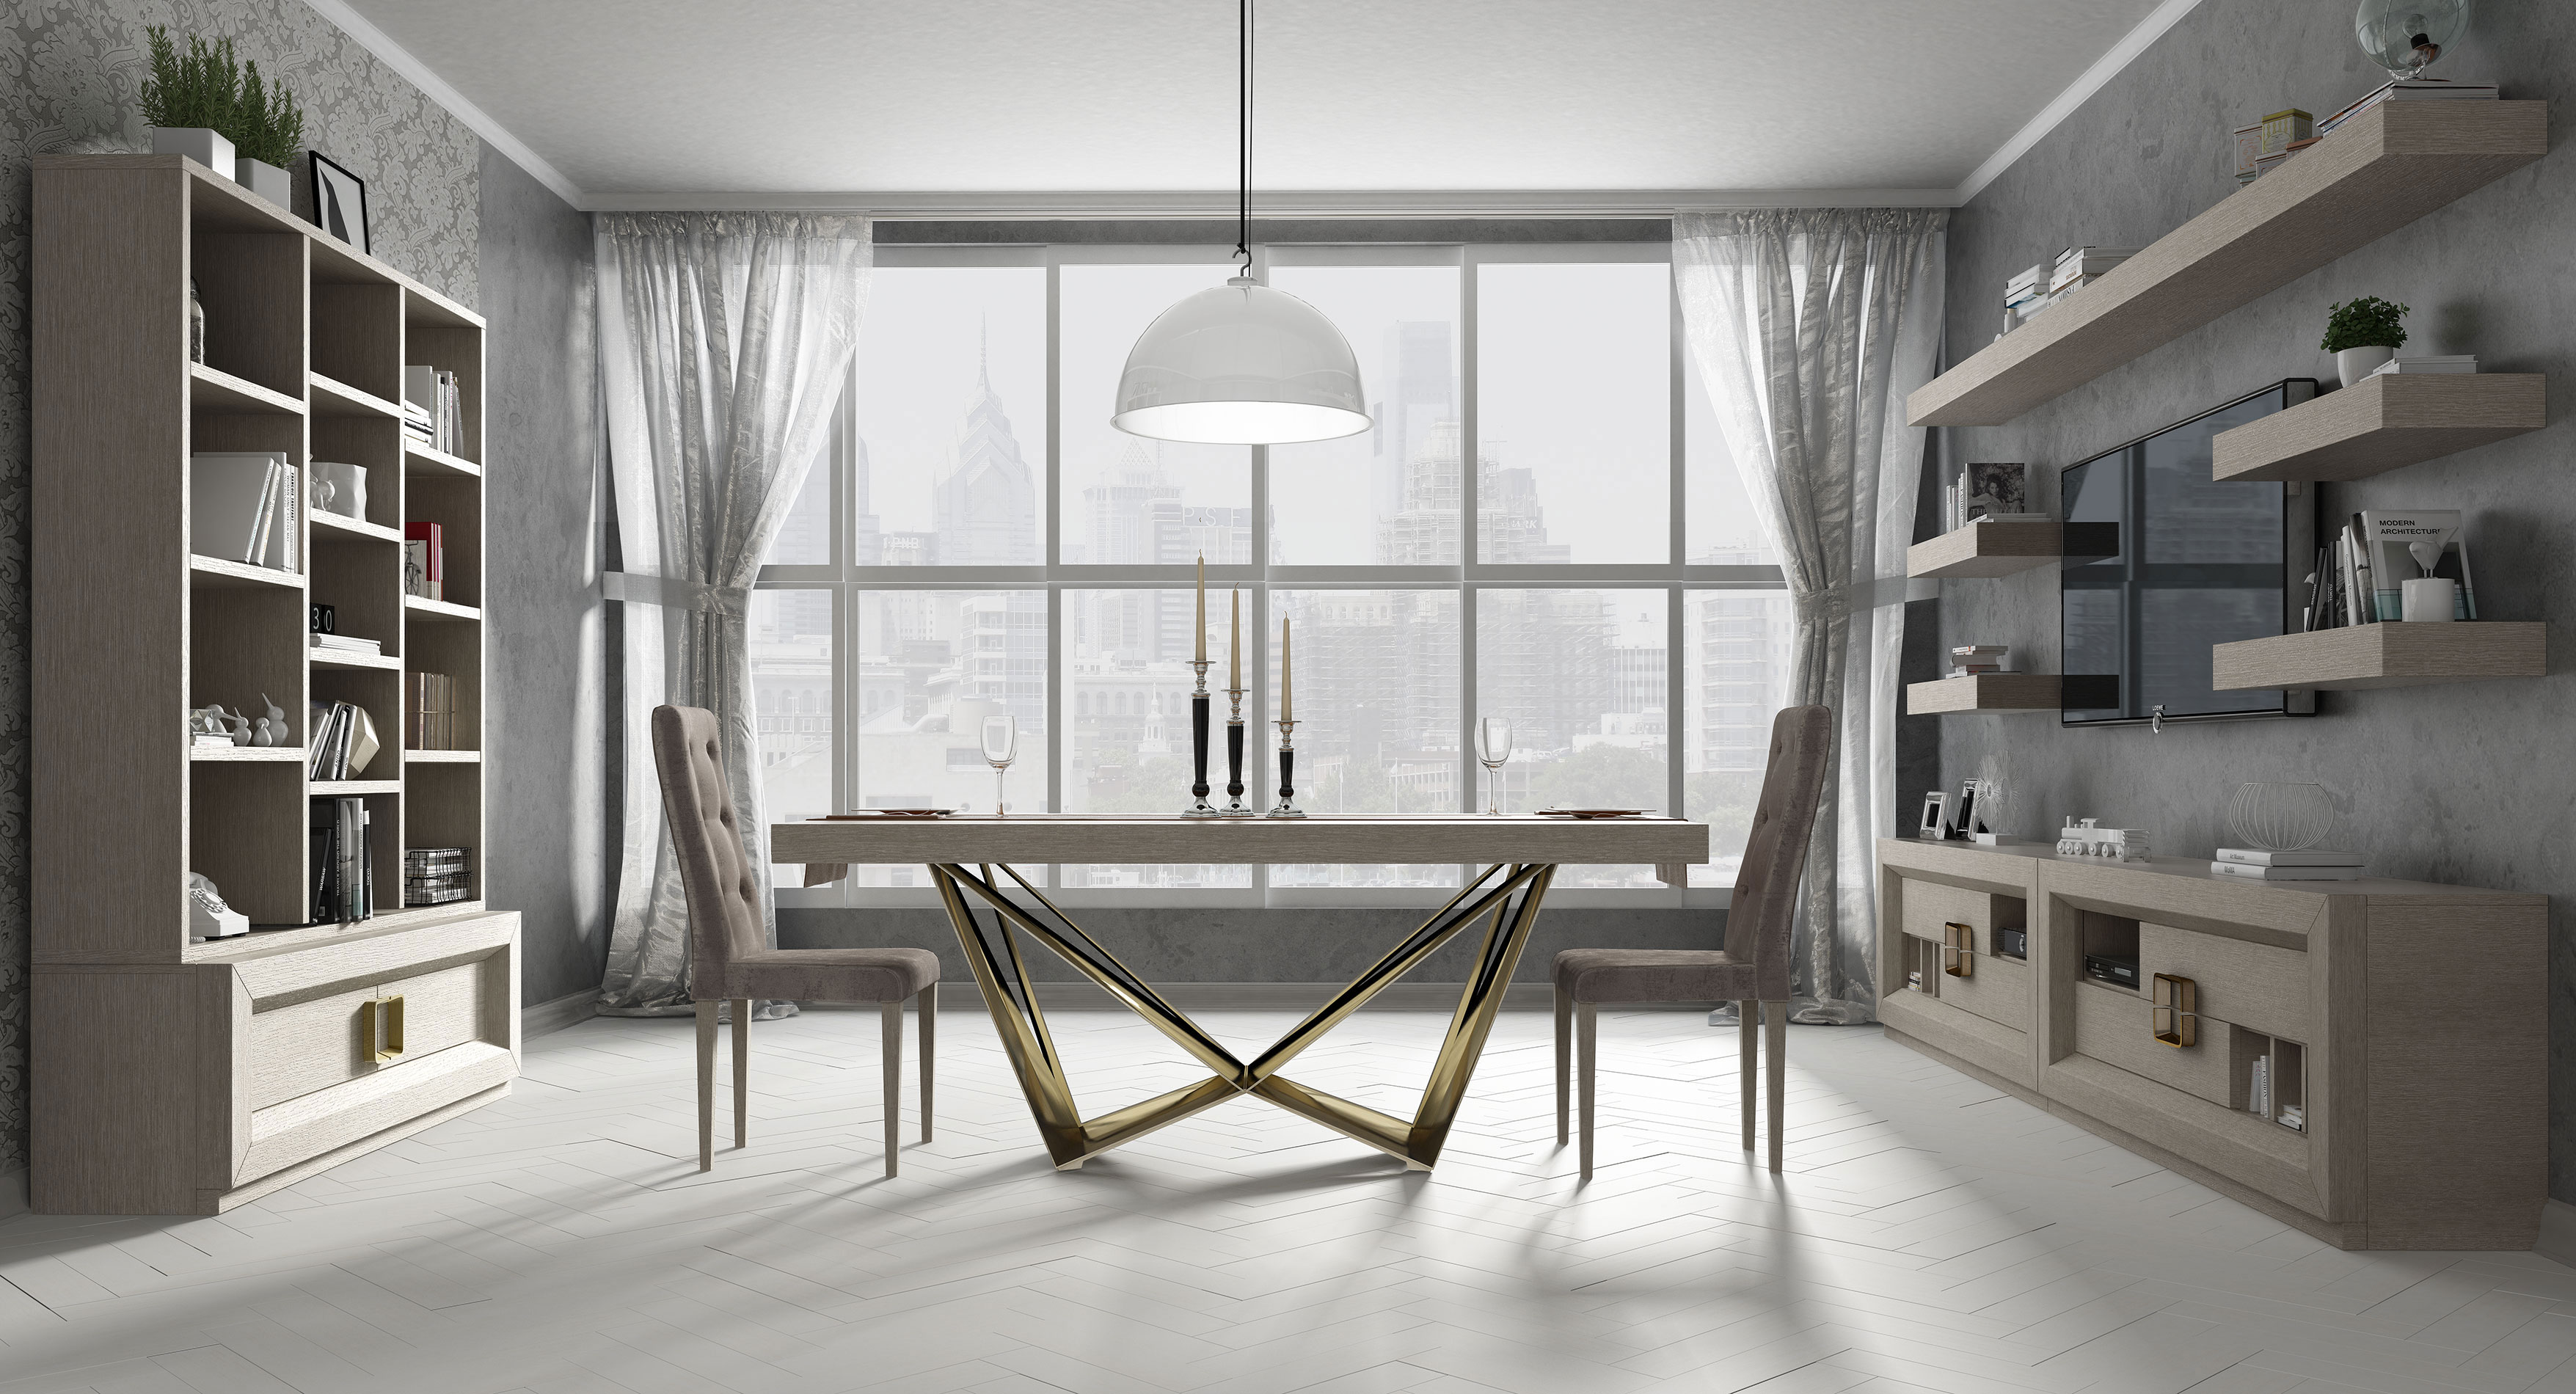 table, modern table, gold legs table, white table, trapezi, chairs, white chairs, karekles, console, konsola, bookshelf, dining table, kitchen table, andreotti, andreotti furniture, epipla, furniture, limassol, cyprus